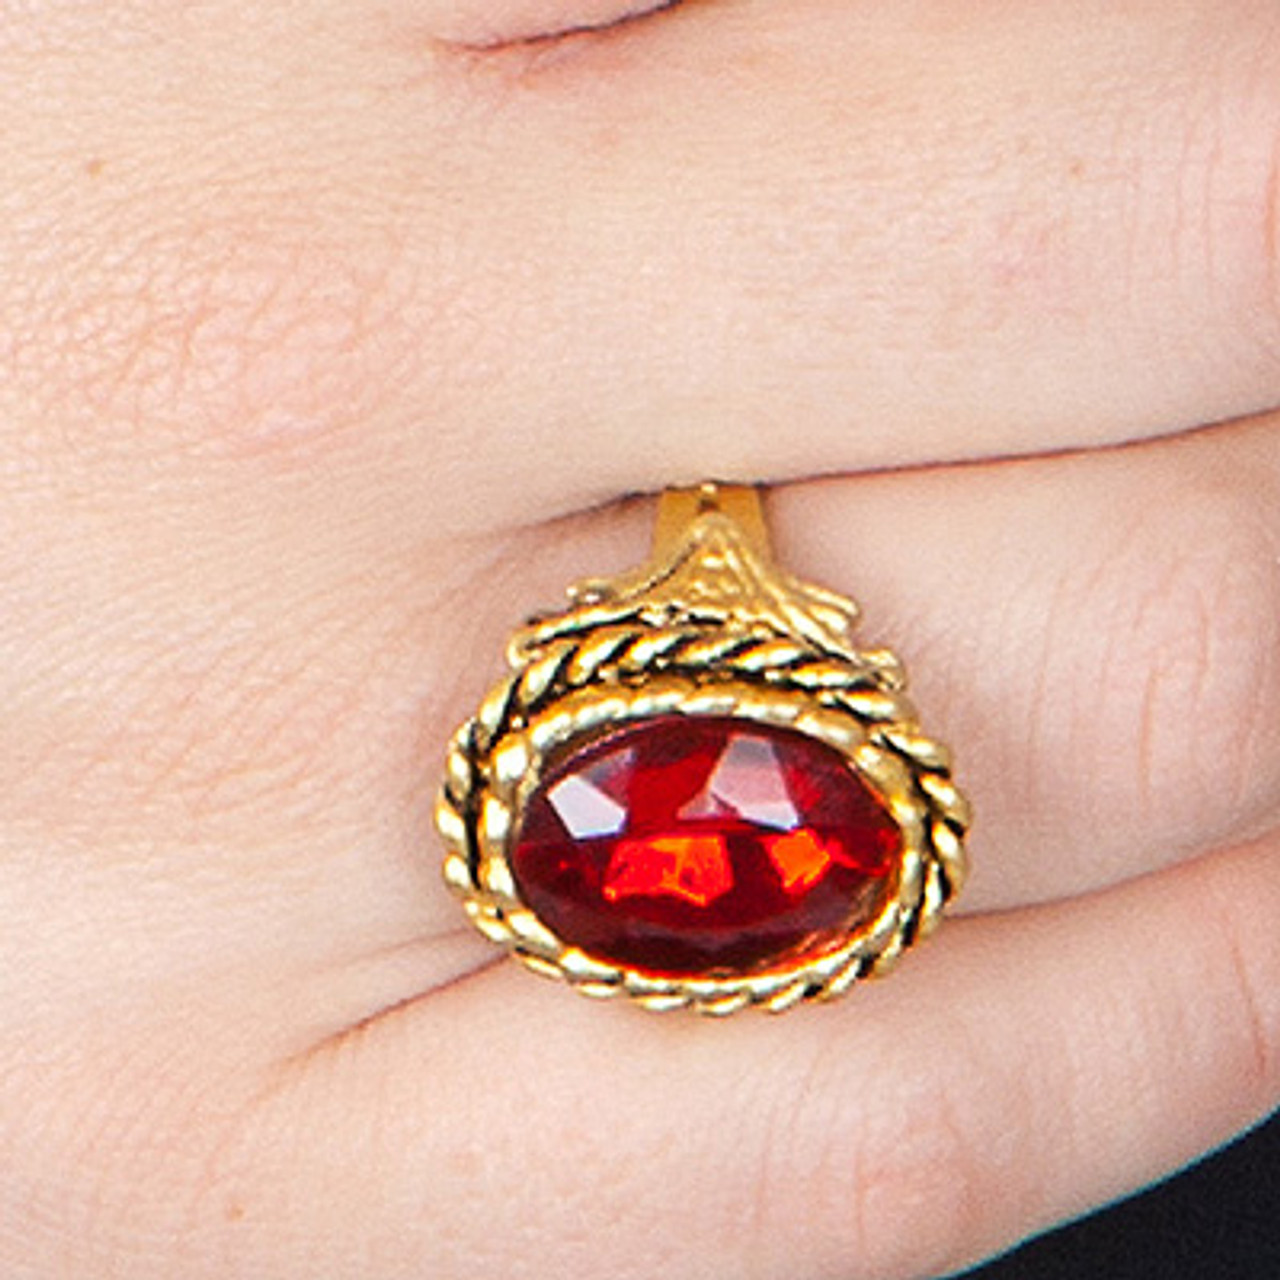 Fancy Dress Party Ring Jewelery Pimp Pirate Gothic Gold Silver Gemstone Cosplay